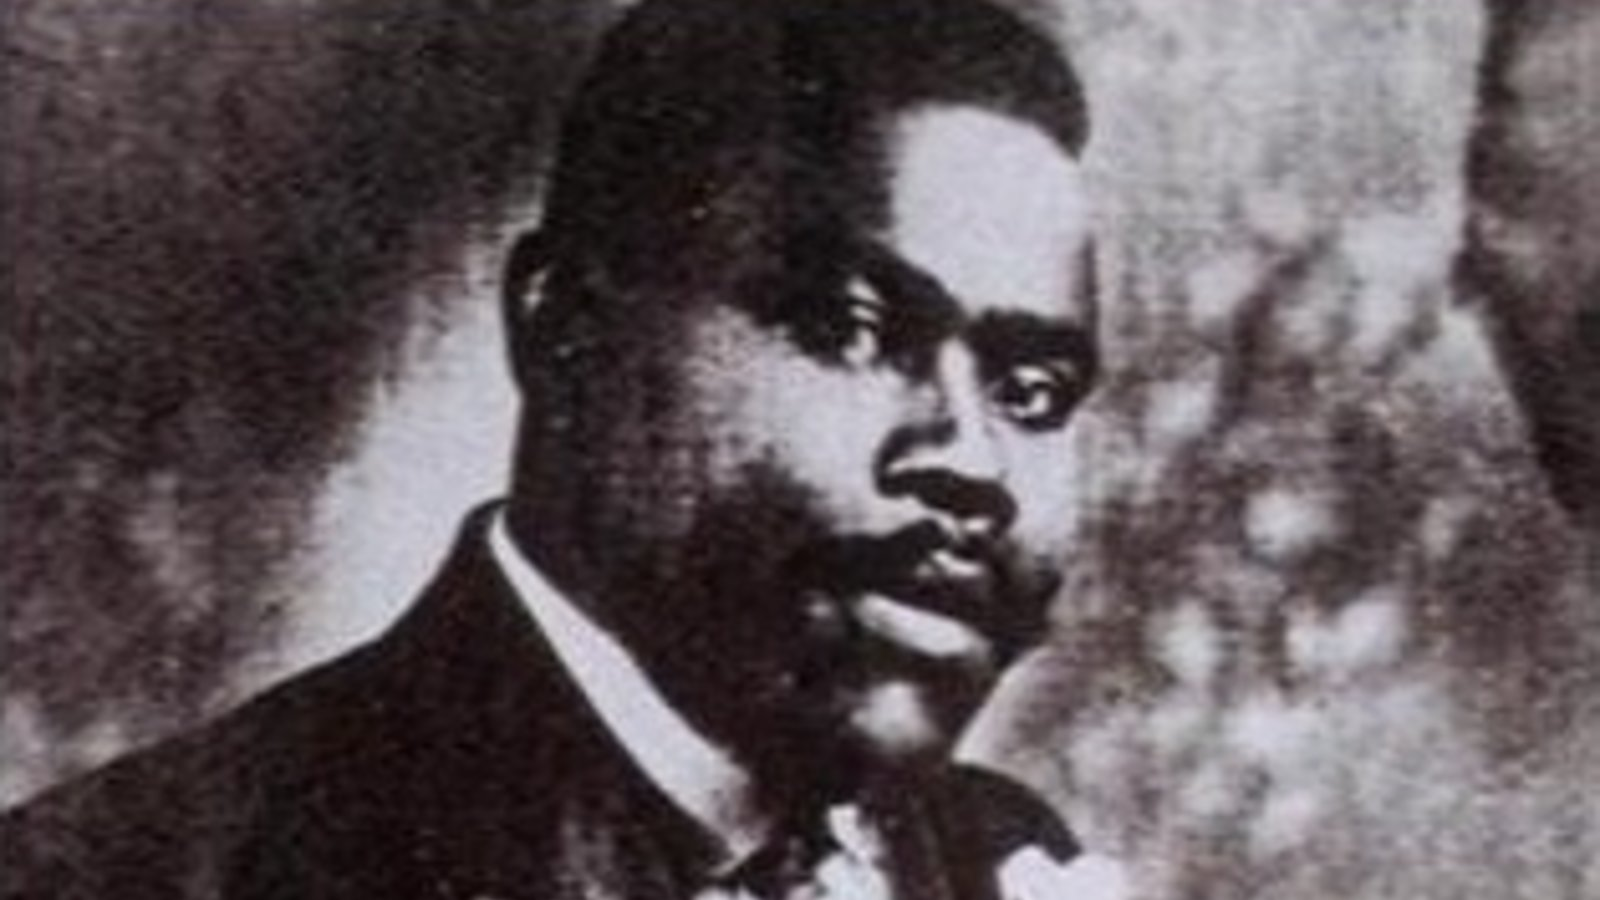 Marcus Garvey - A Giant Of Black Politics